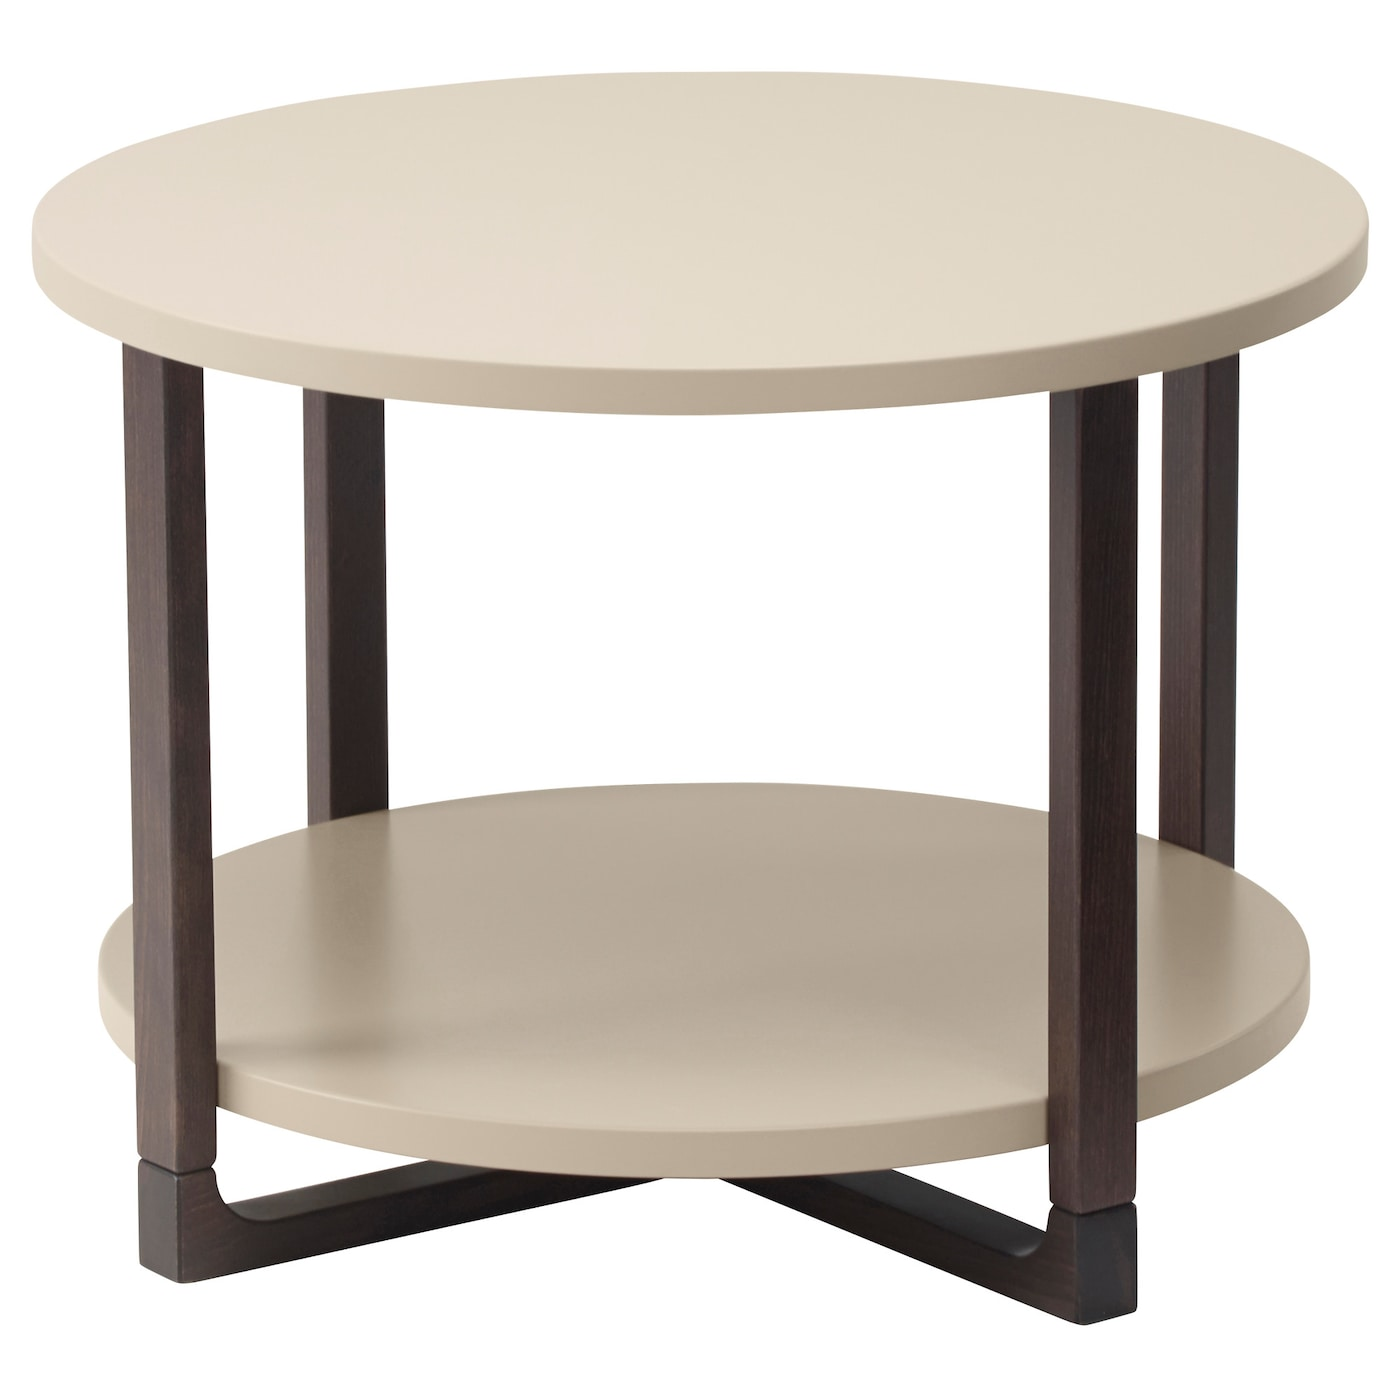 Rissna side table beige 60 cm ikea - Table basse laquee beige ...